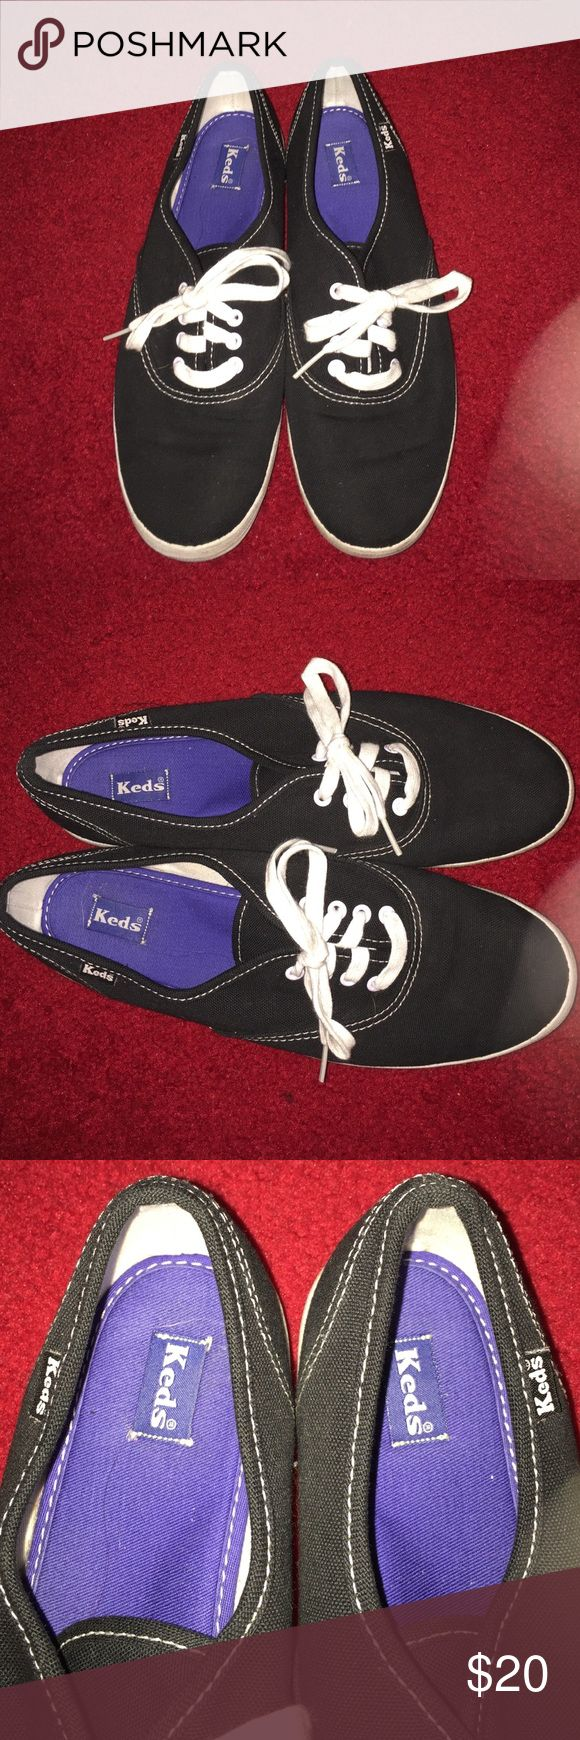 Keds sneakers size 8  💜like new!💜 Keds sneakers 👟 like new! Black sneaker, size 8. Low cut shoe with white laces and white stitching trim on shoe. Keds Shoes Sneakers